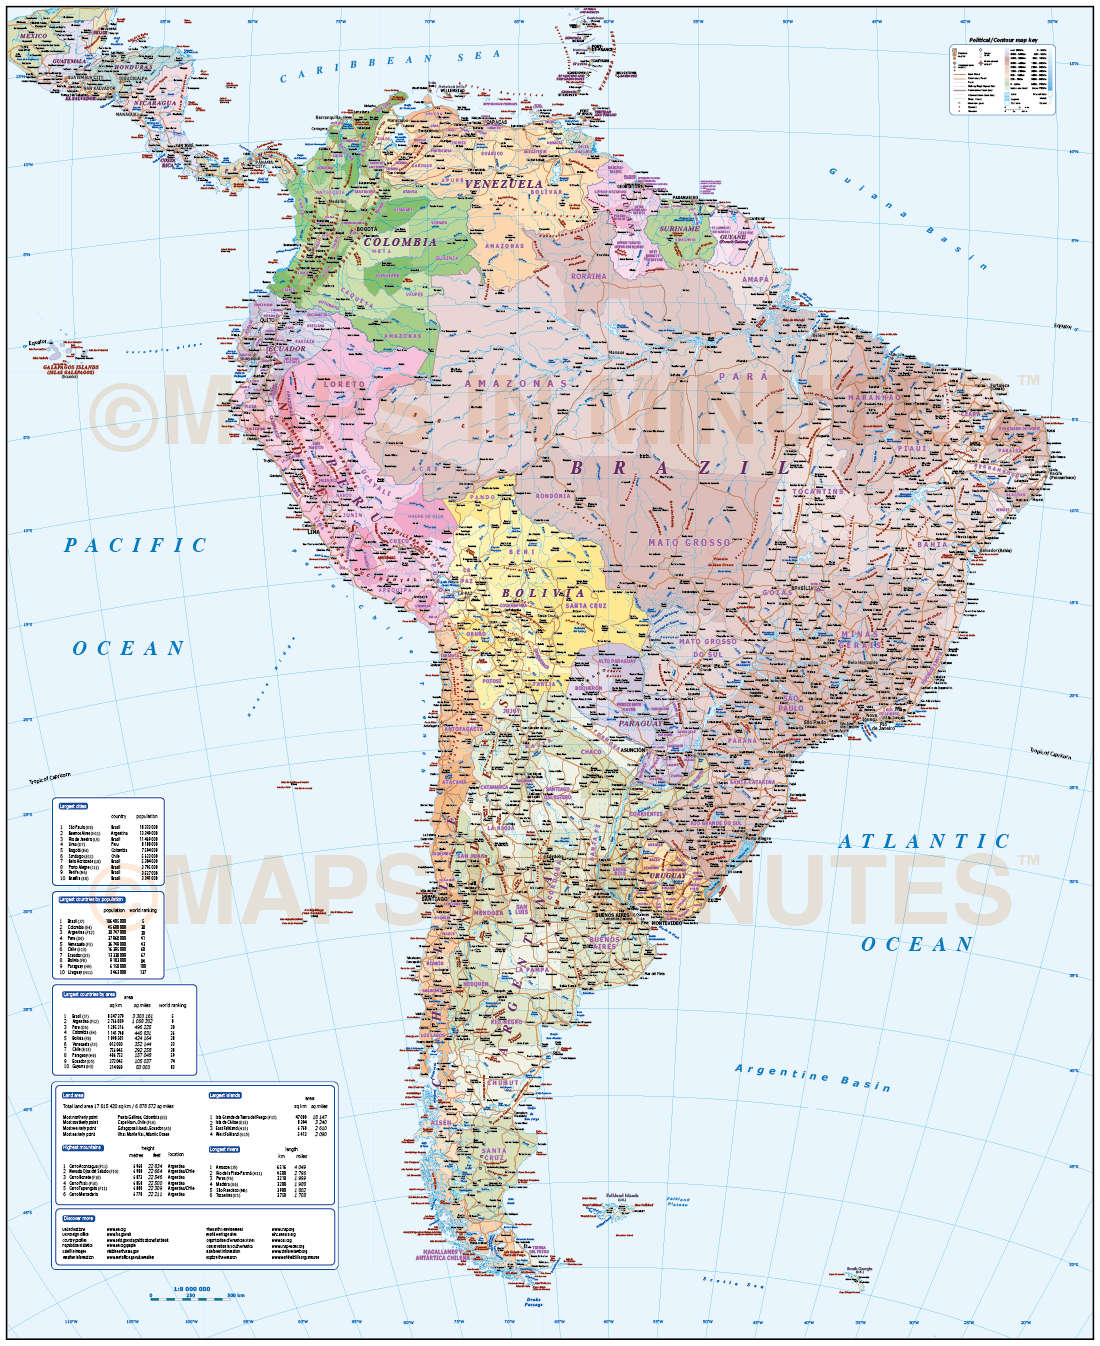 Digital vector South America map. Deluxe Political Road ... on road map biology, features south america, destination south america, road map scandinavia, library south america, camping south america, driving in columbia south america, road map brazil, road map buenos aires, hotels south america, water south america, trip south america, road map anguilla, road map zimbabwe, tourist south america, landlocked country south america, lake nicaragua map central america, road map martinique, blog south america, road map suriname,